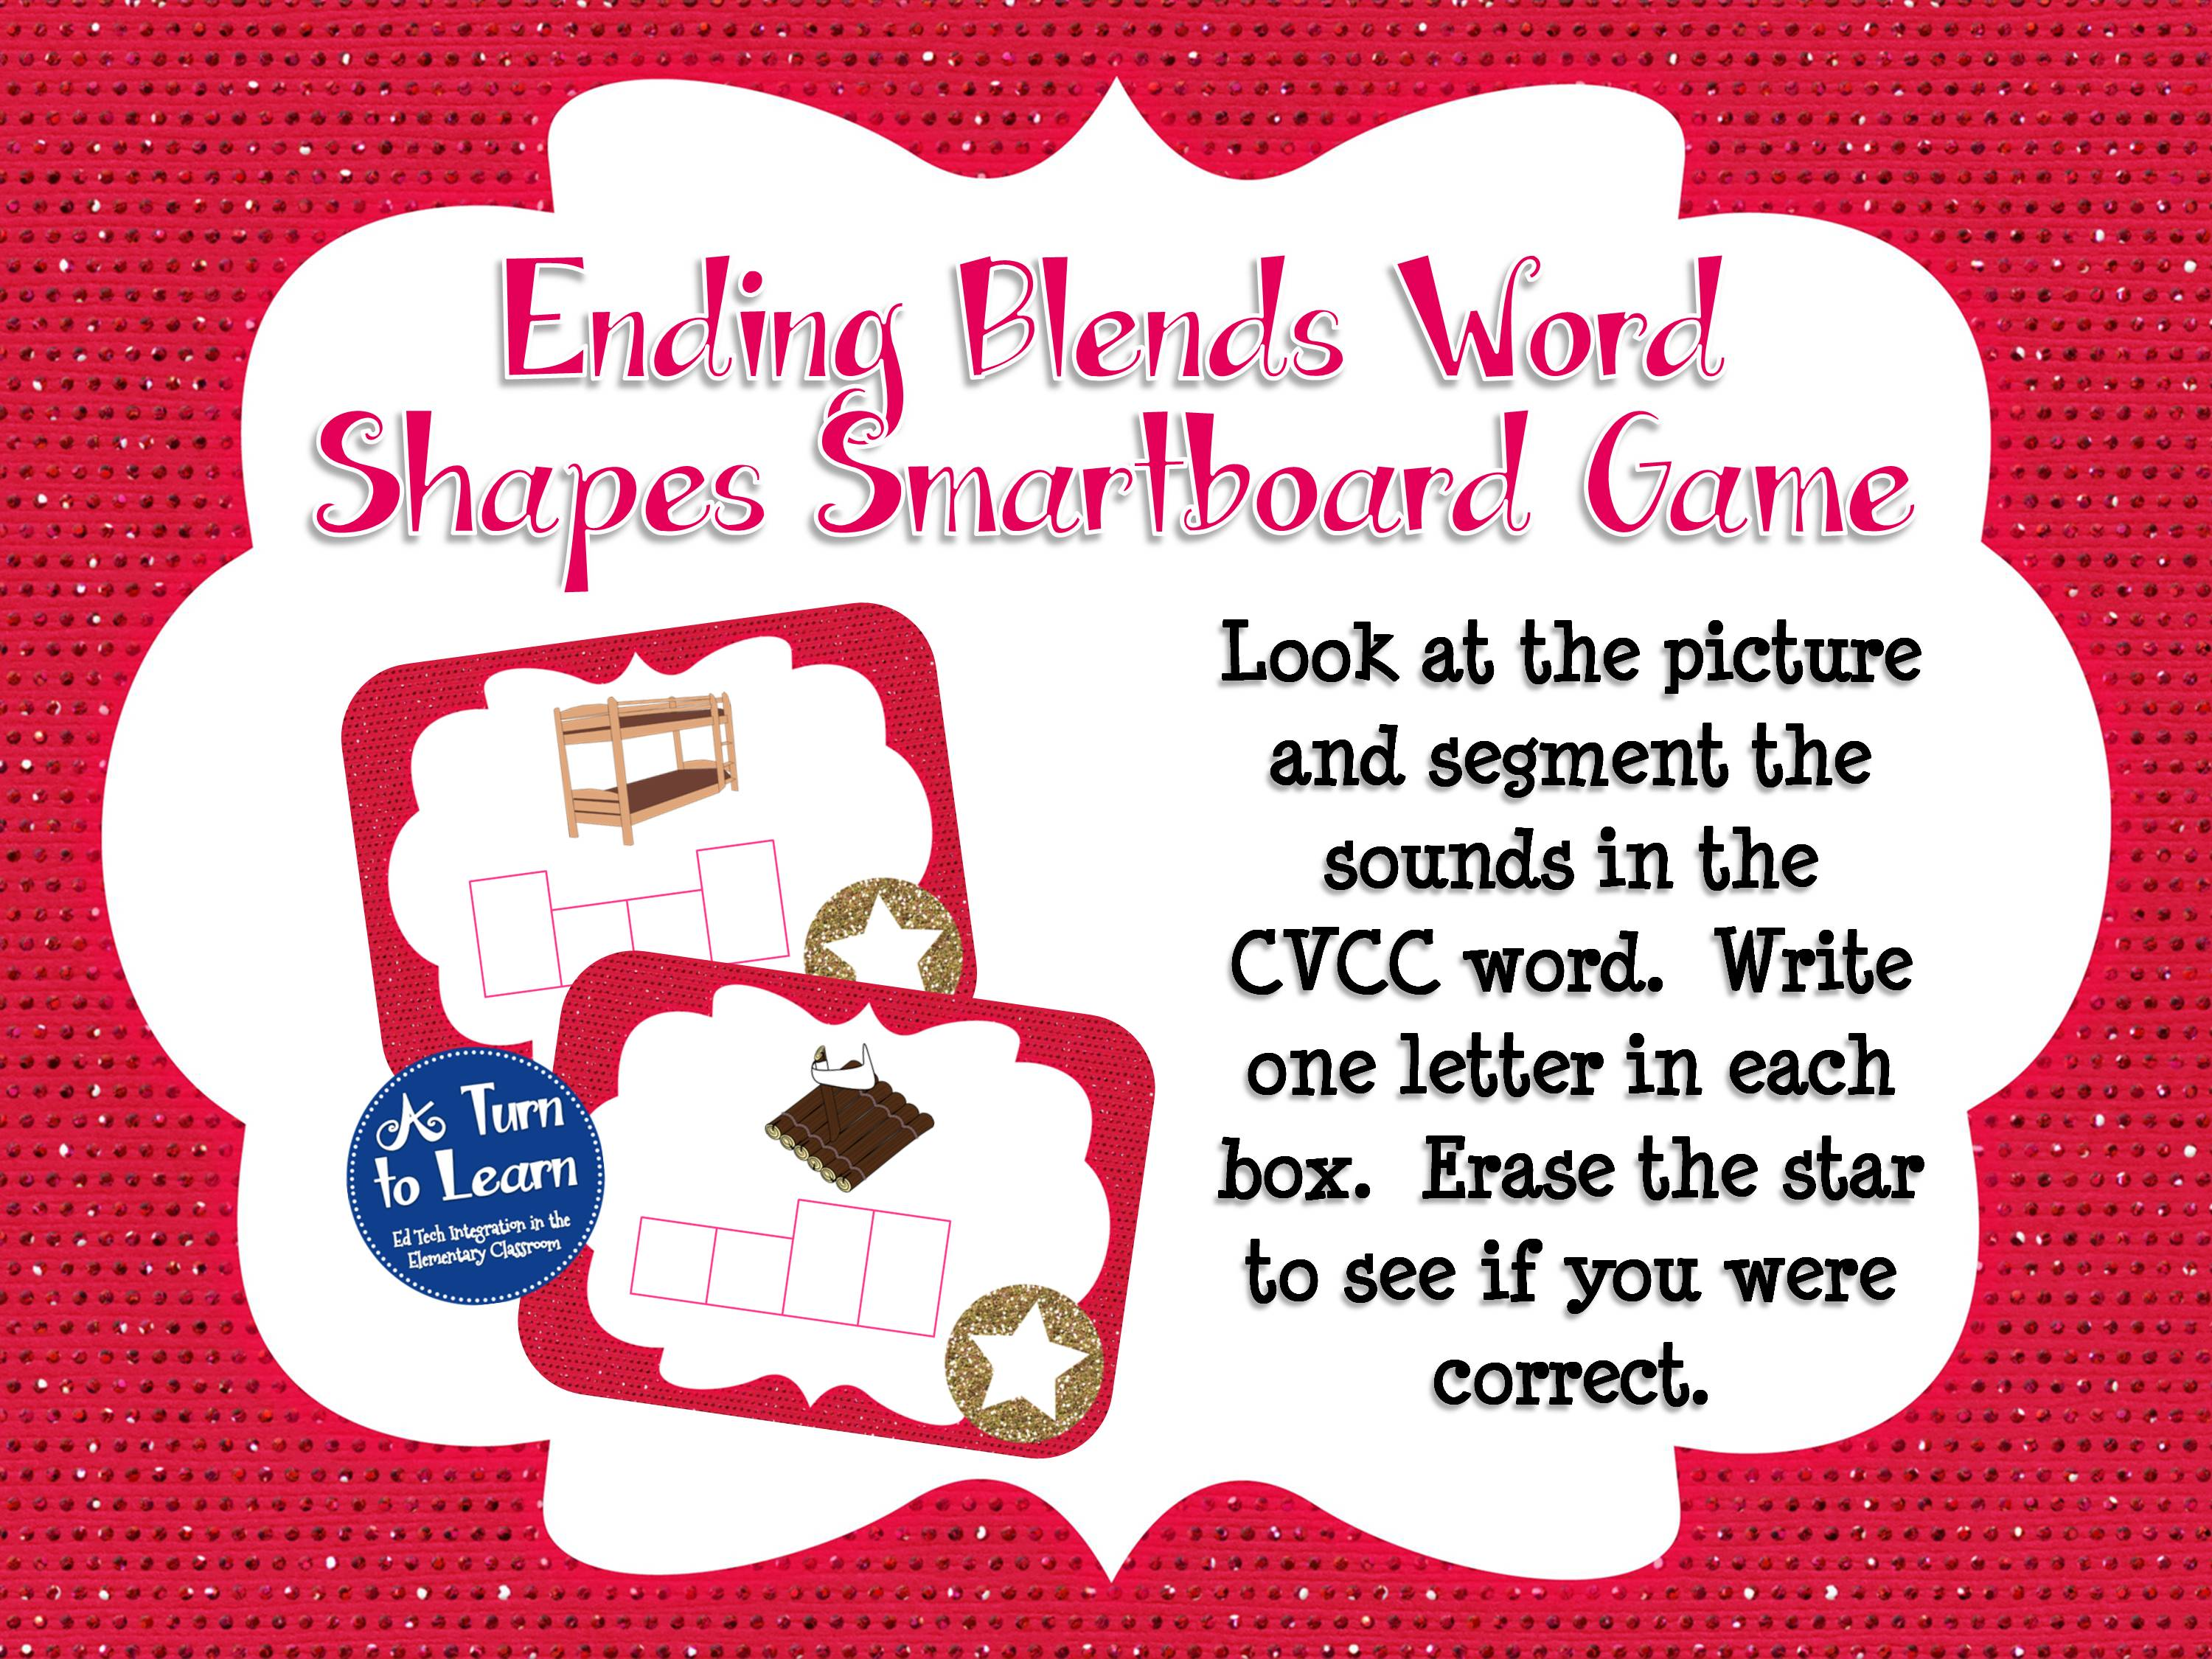 Ending Blends Smartboard Games and Movie • A Turn to Learn